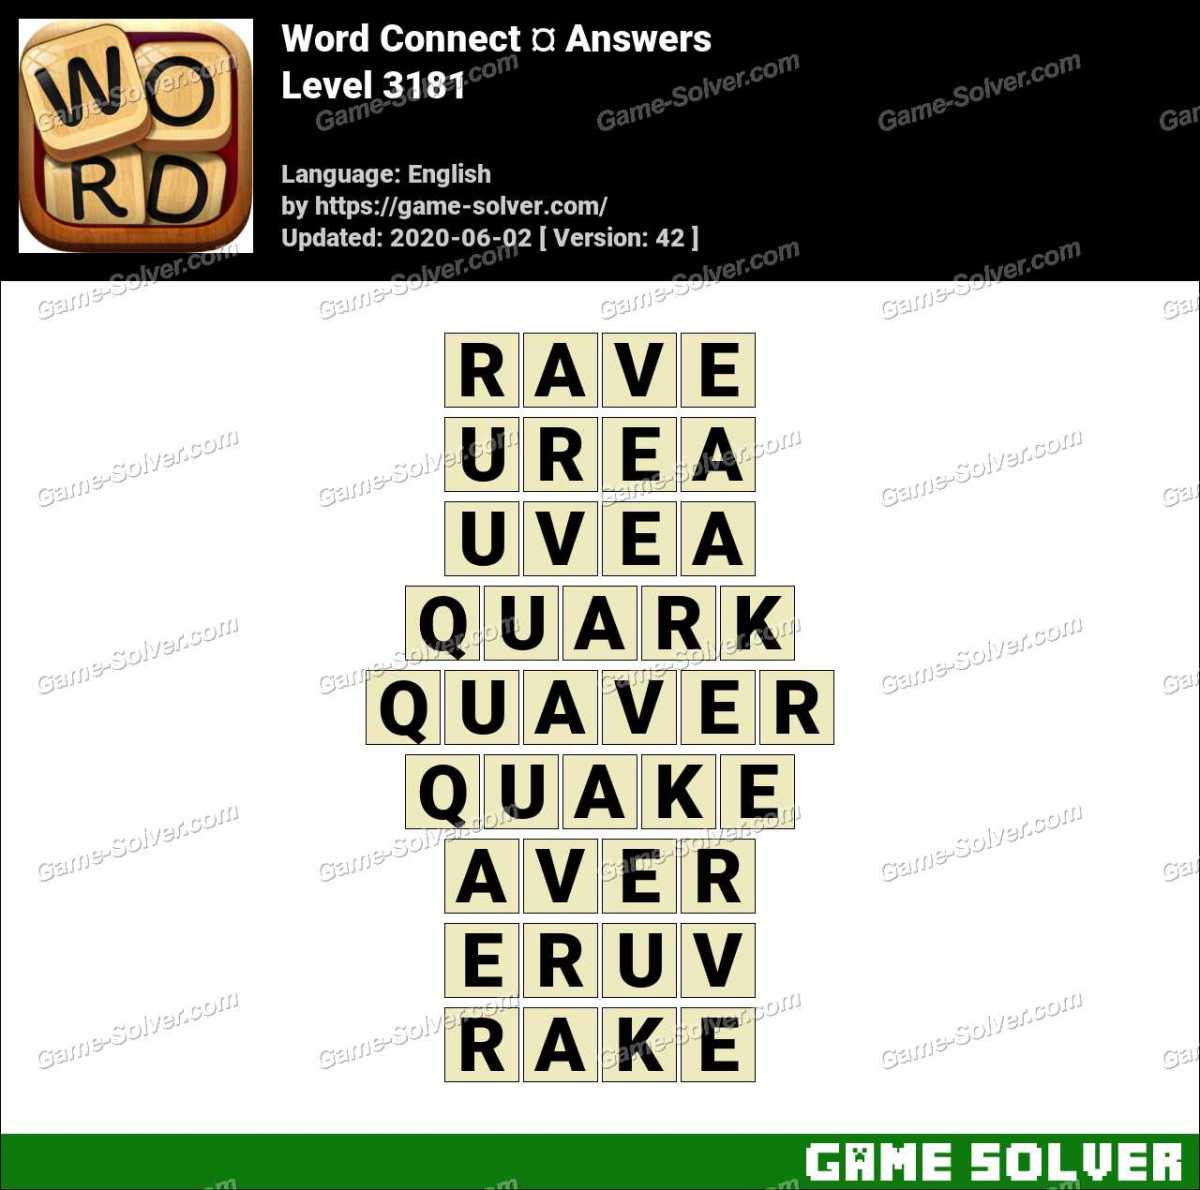 Word Connect Level 3181 Answers